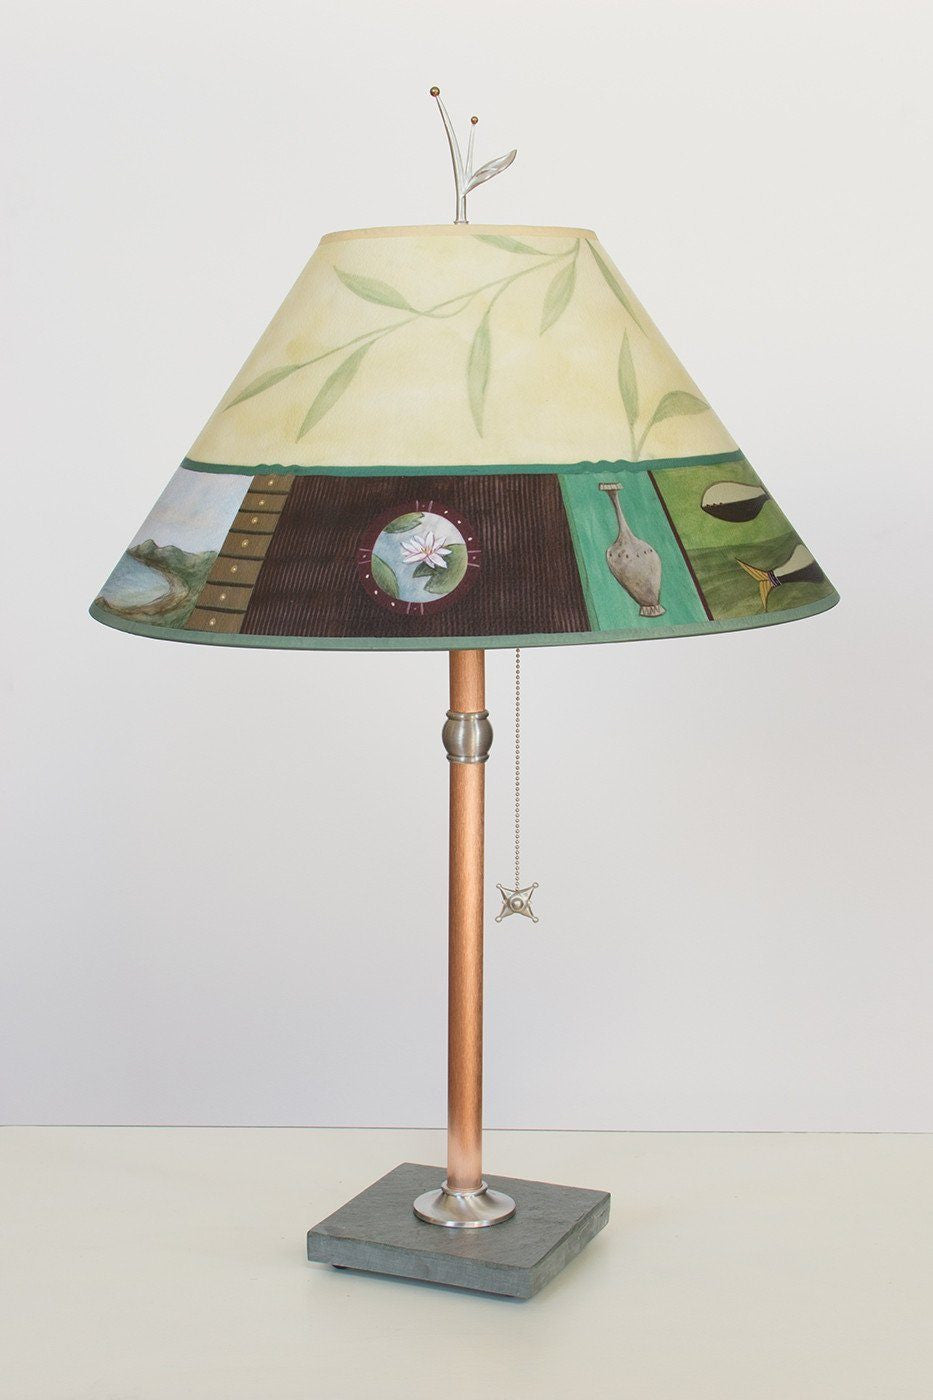 Copper Table Lamp on Vermont Slate with Large Conical Shade in Twin Fish